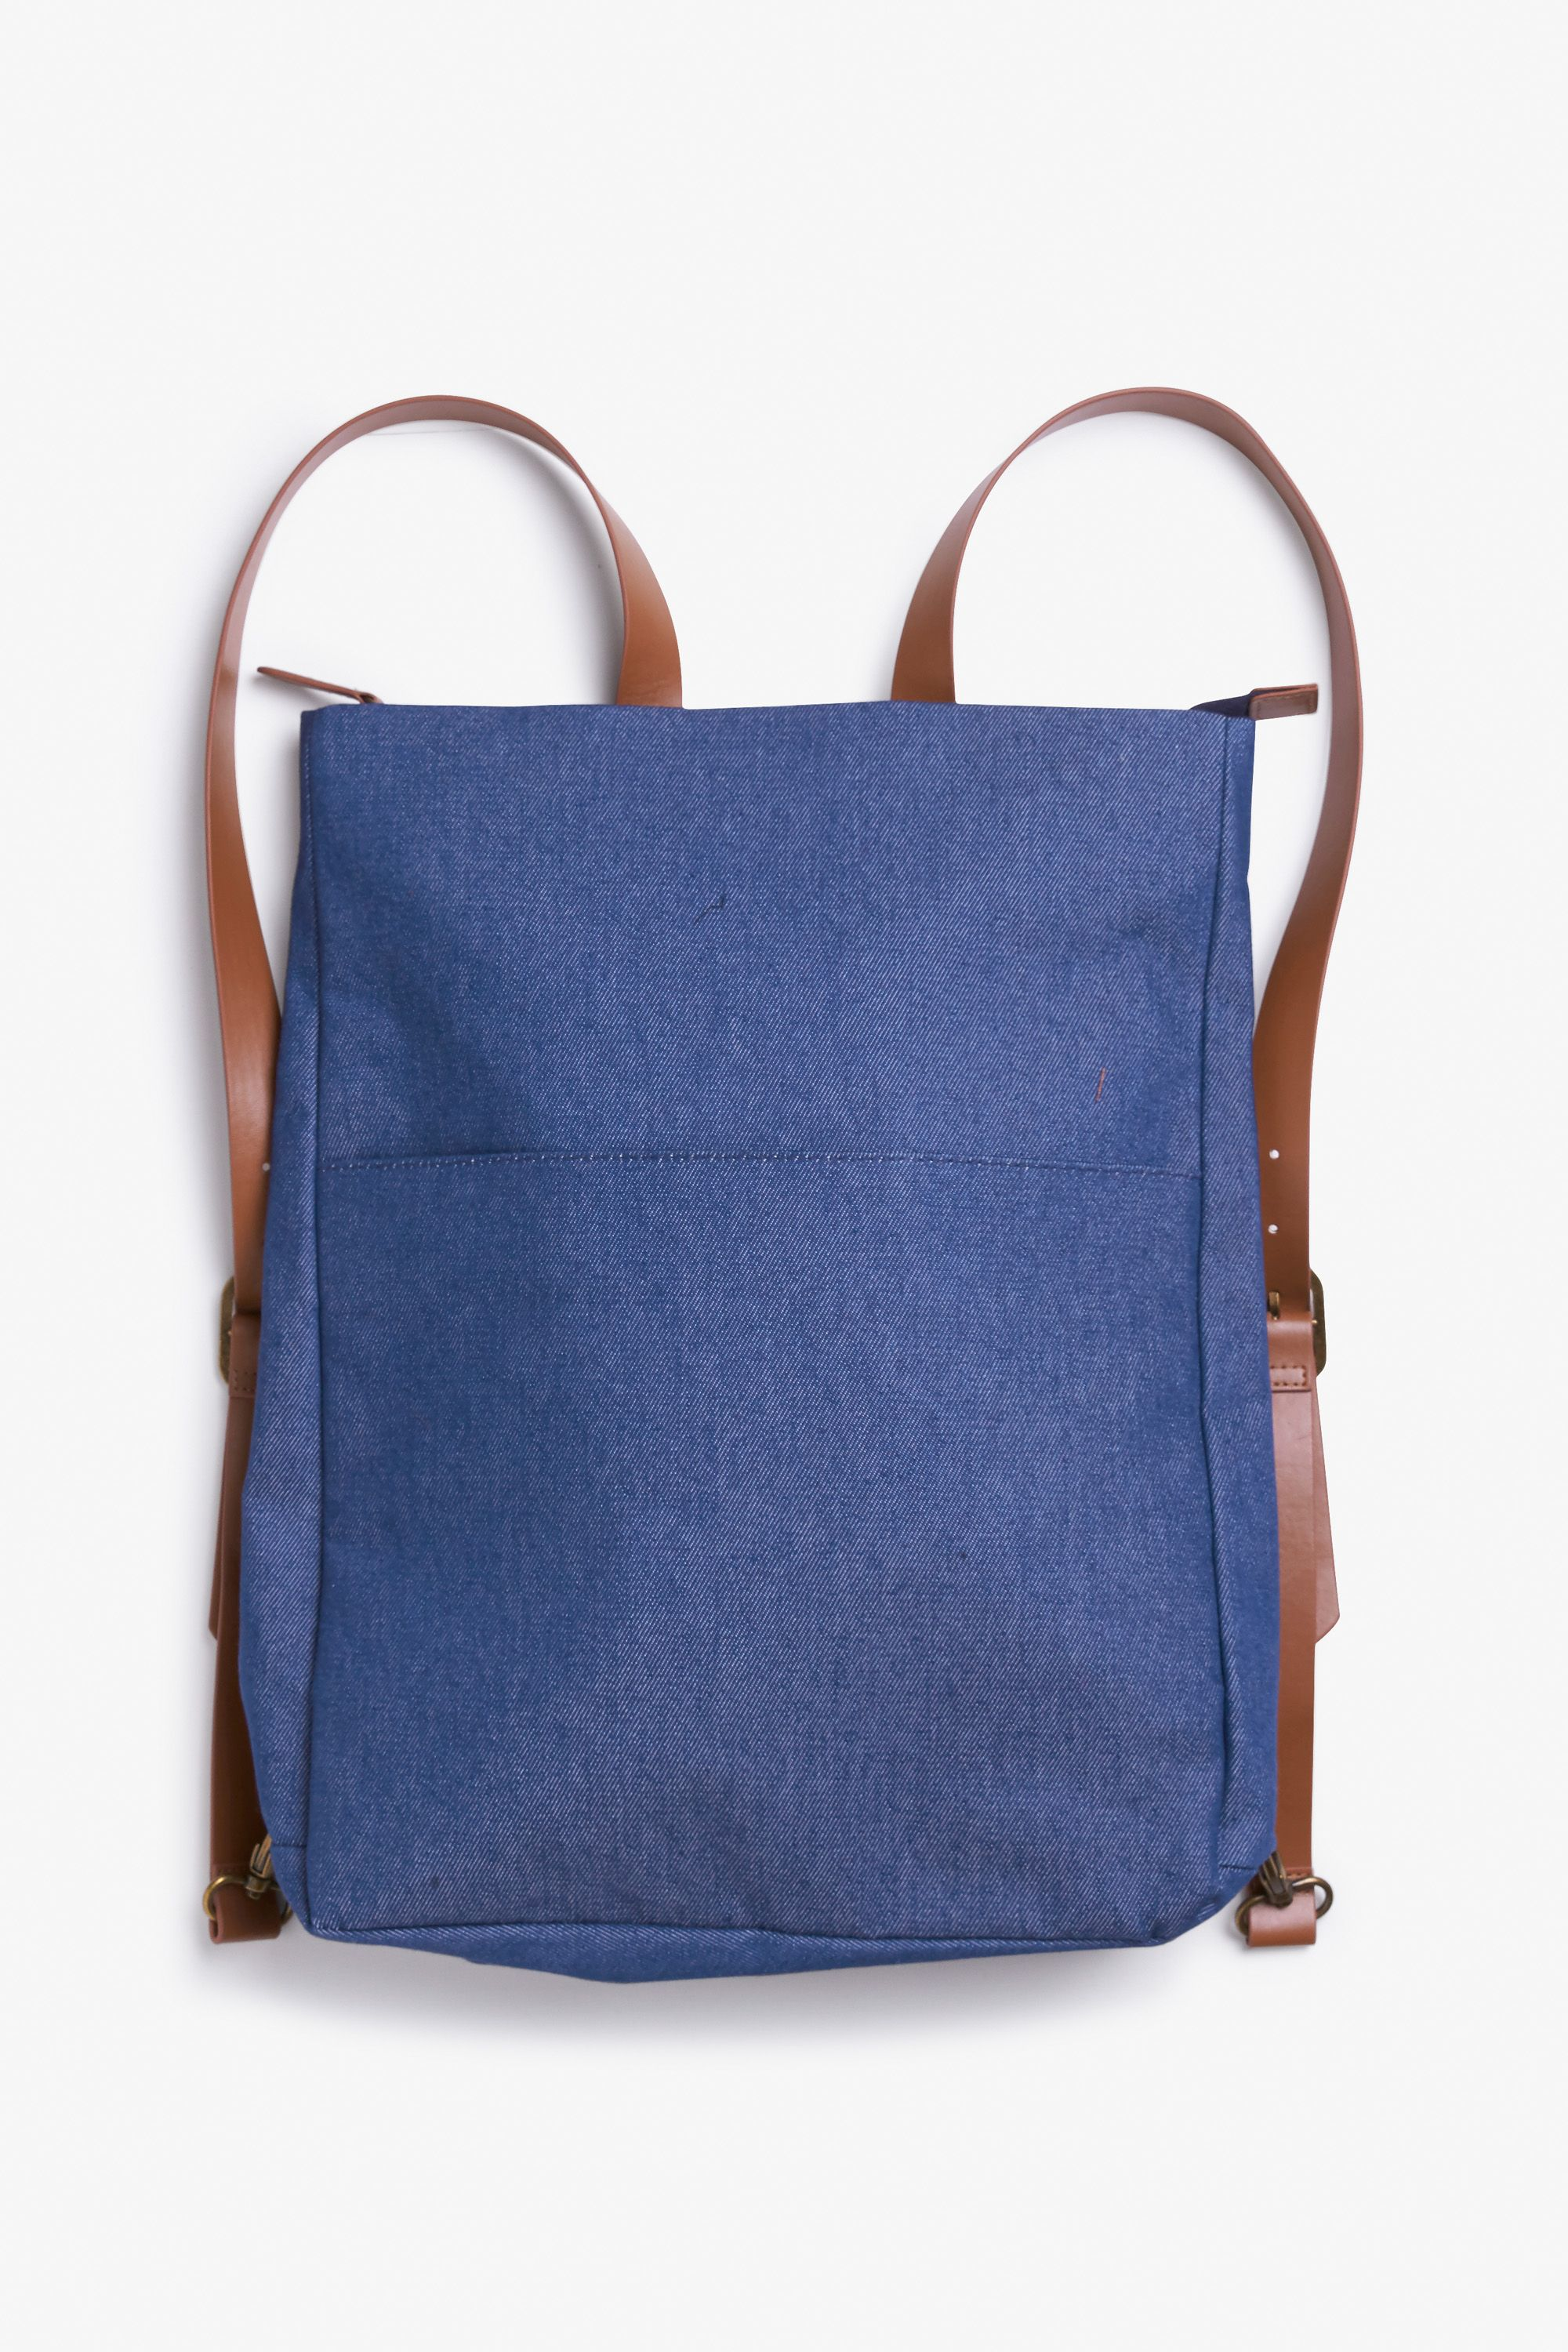 Asuper simplified denim backpack, which lies flat like a tote with a brass-coloured zipper straight across the top.